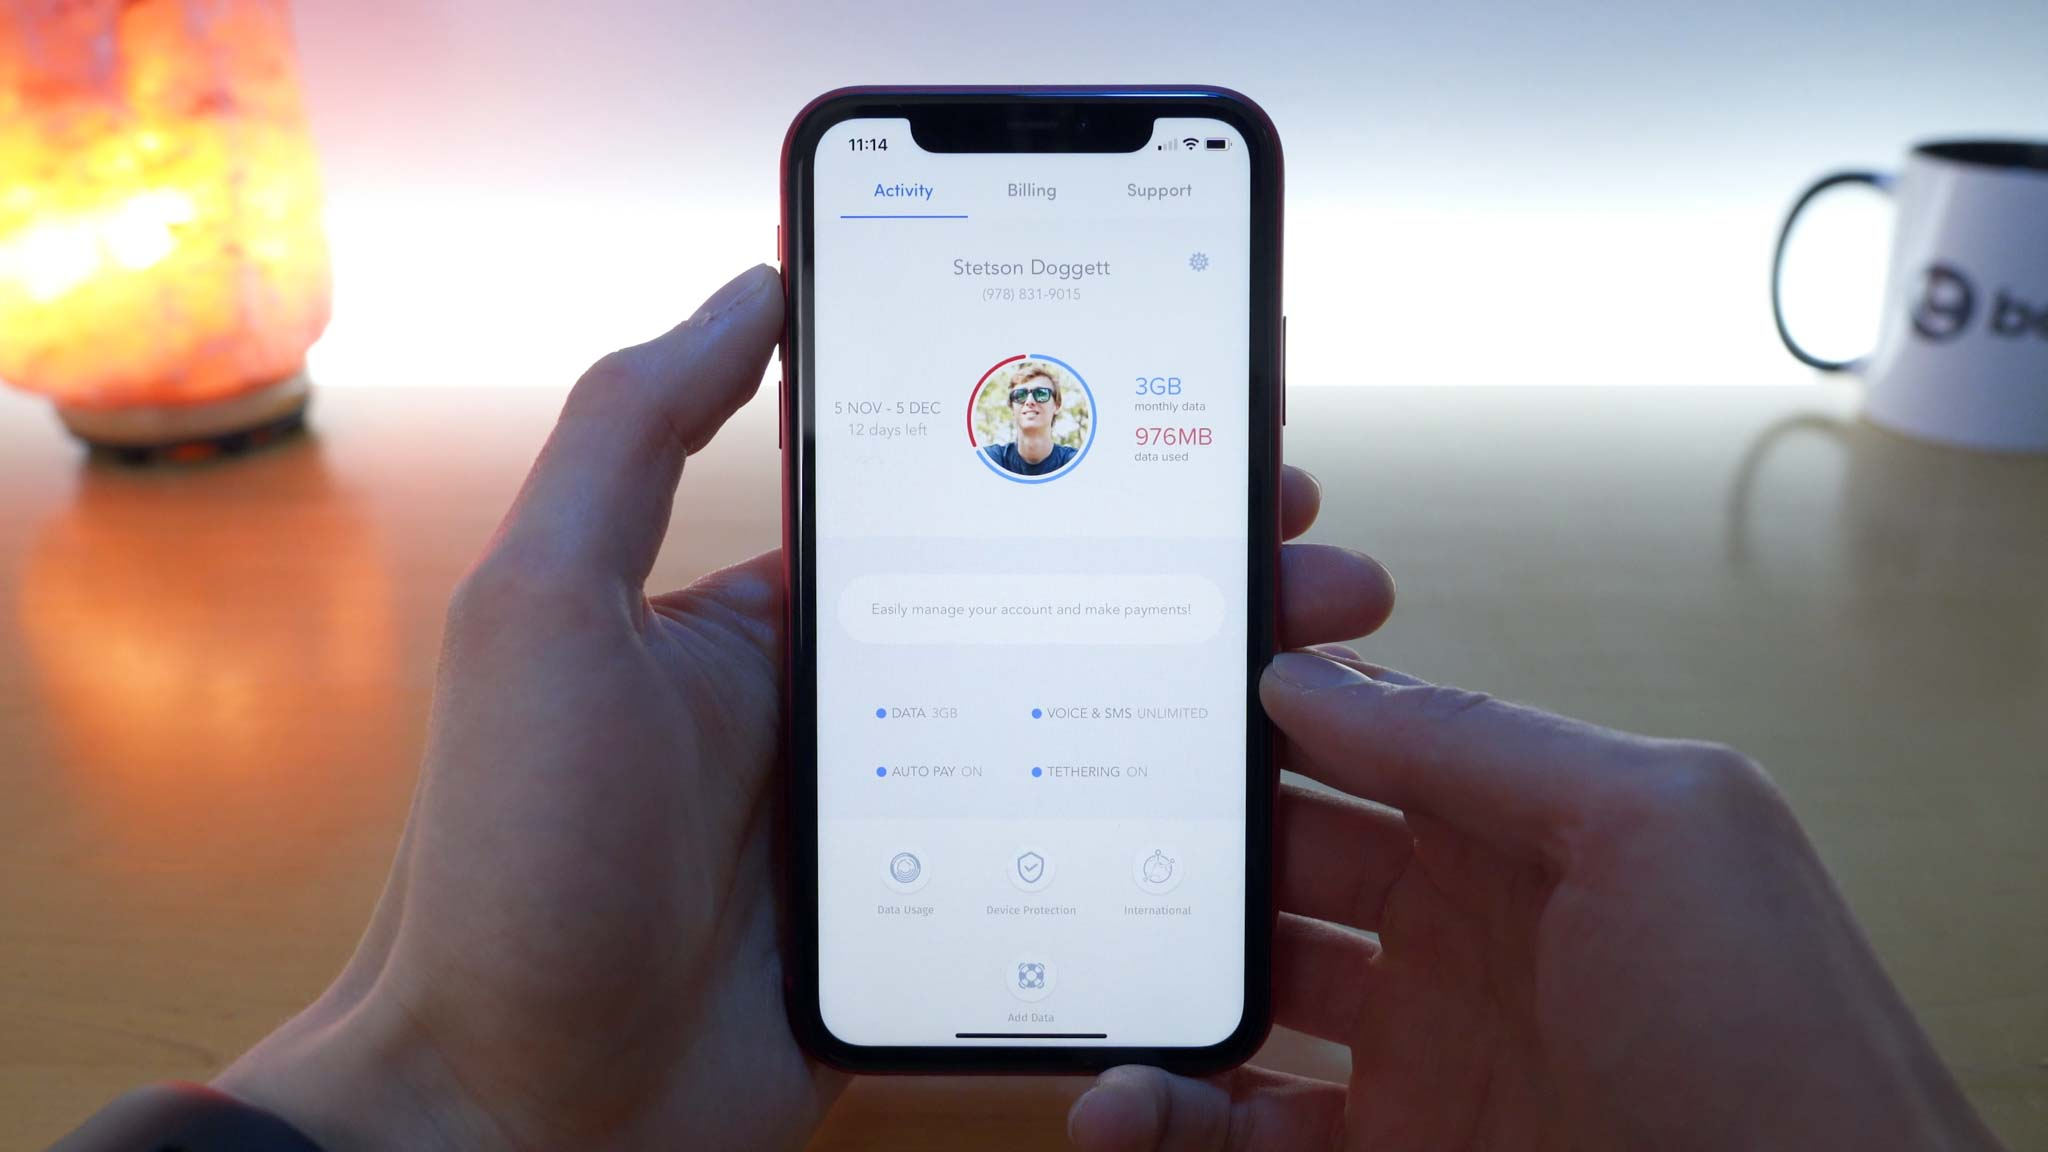 iPhone 11 Pro open to Wing application with overview of account and data usage